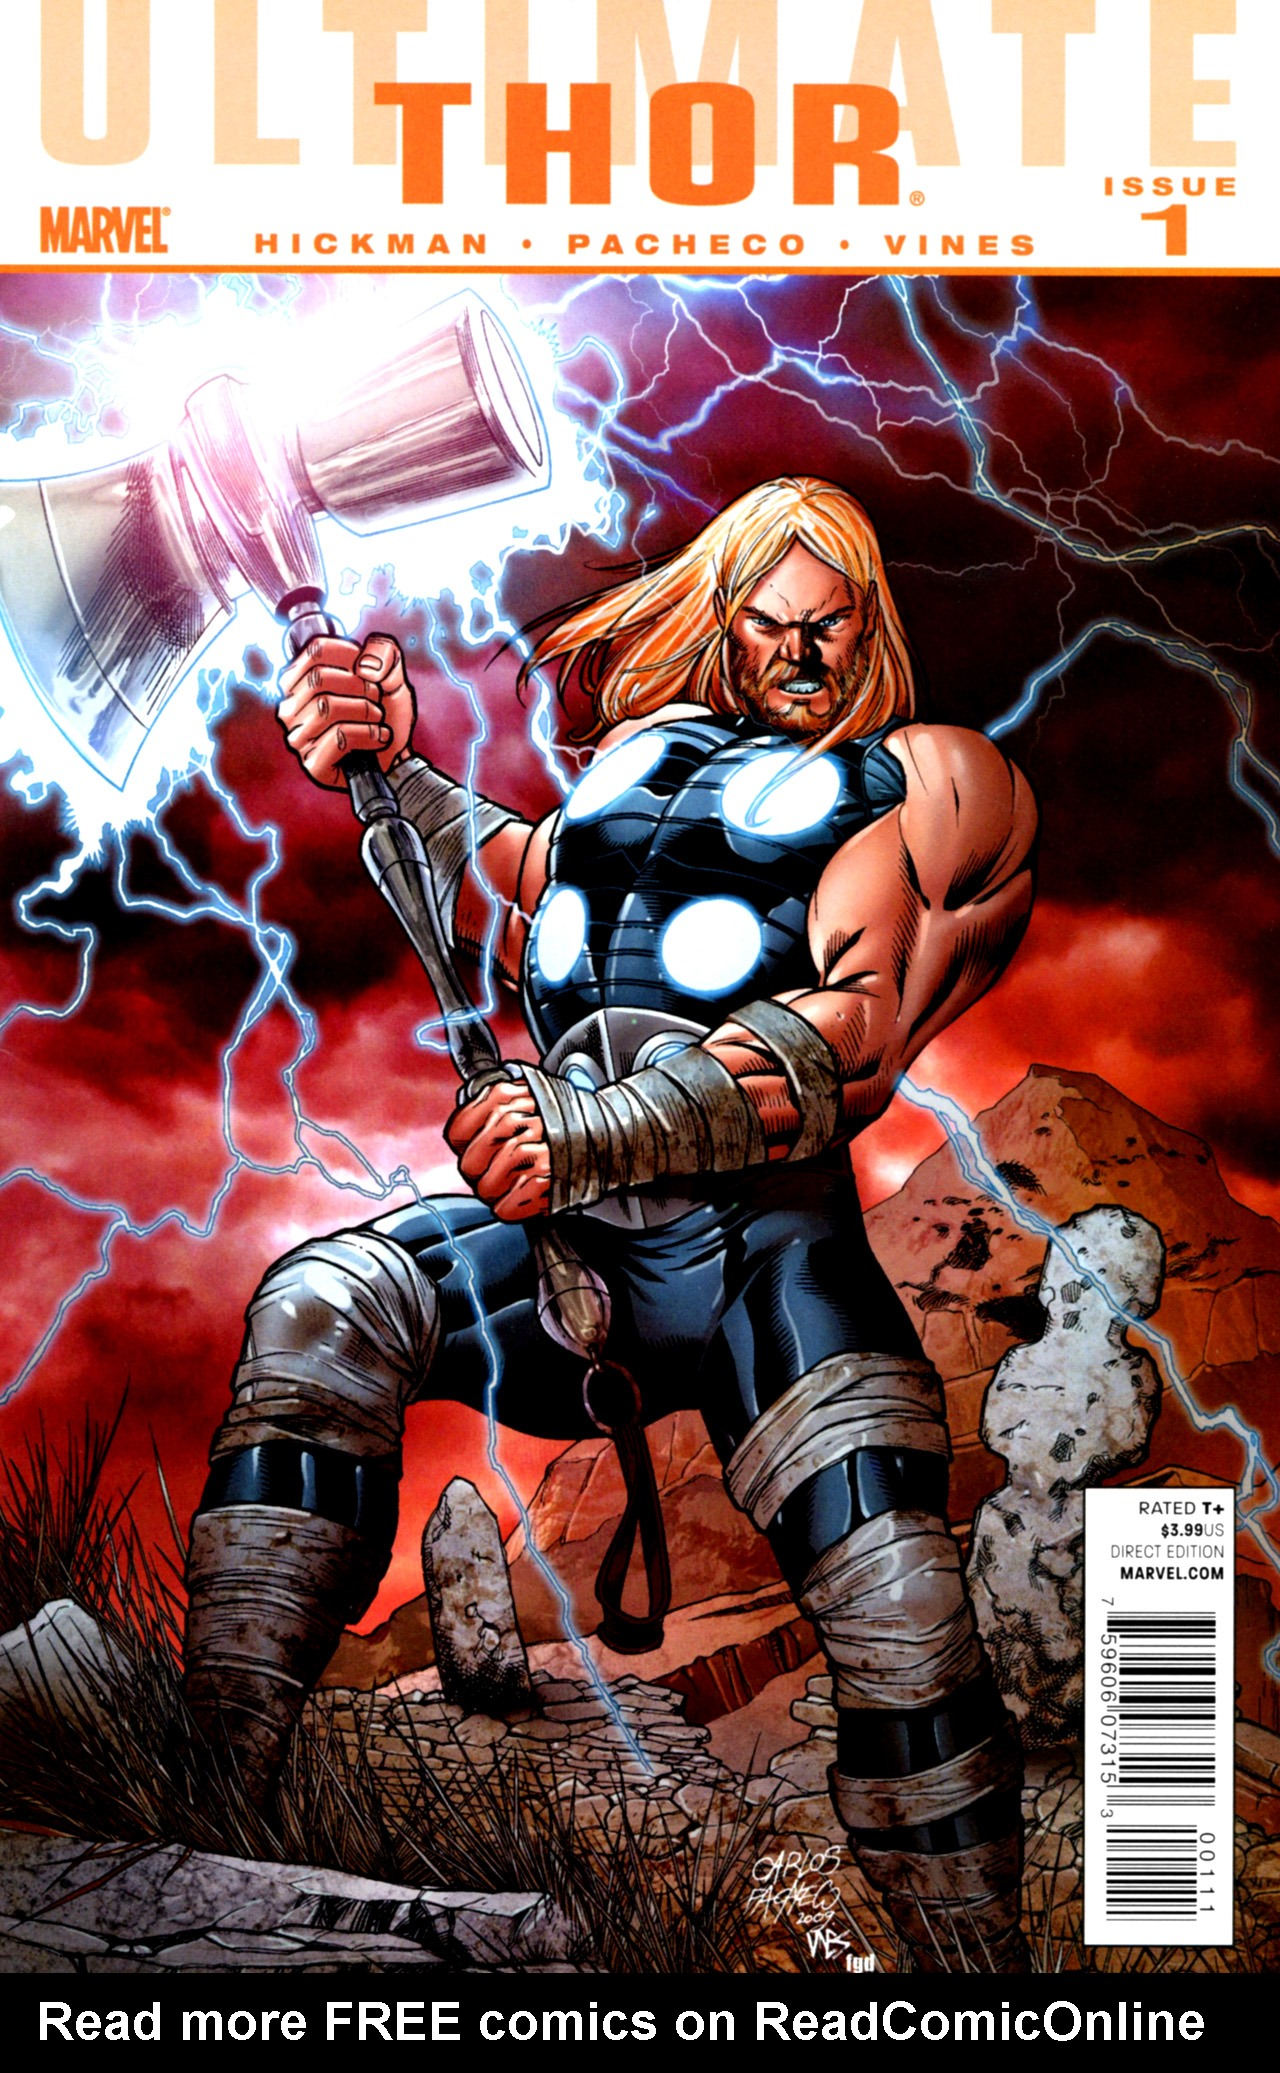 Read online Ultimate Thor comic -  Issue #1 - 1